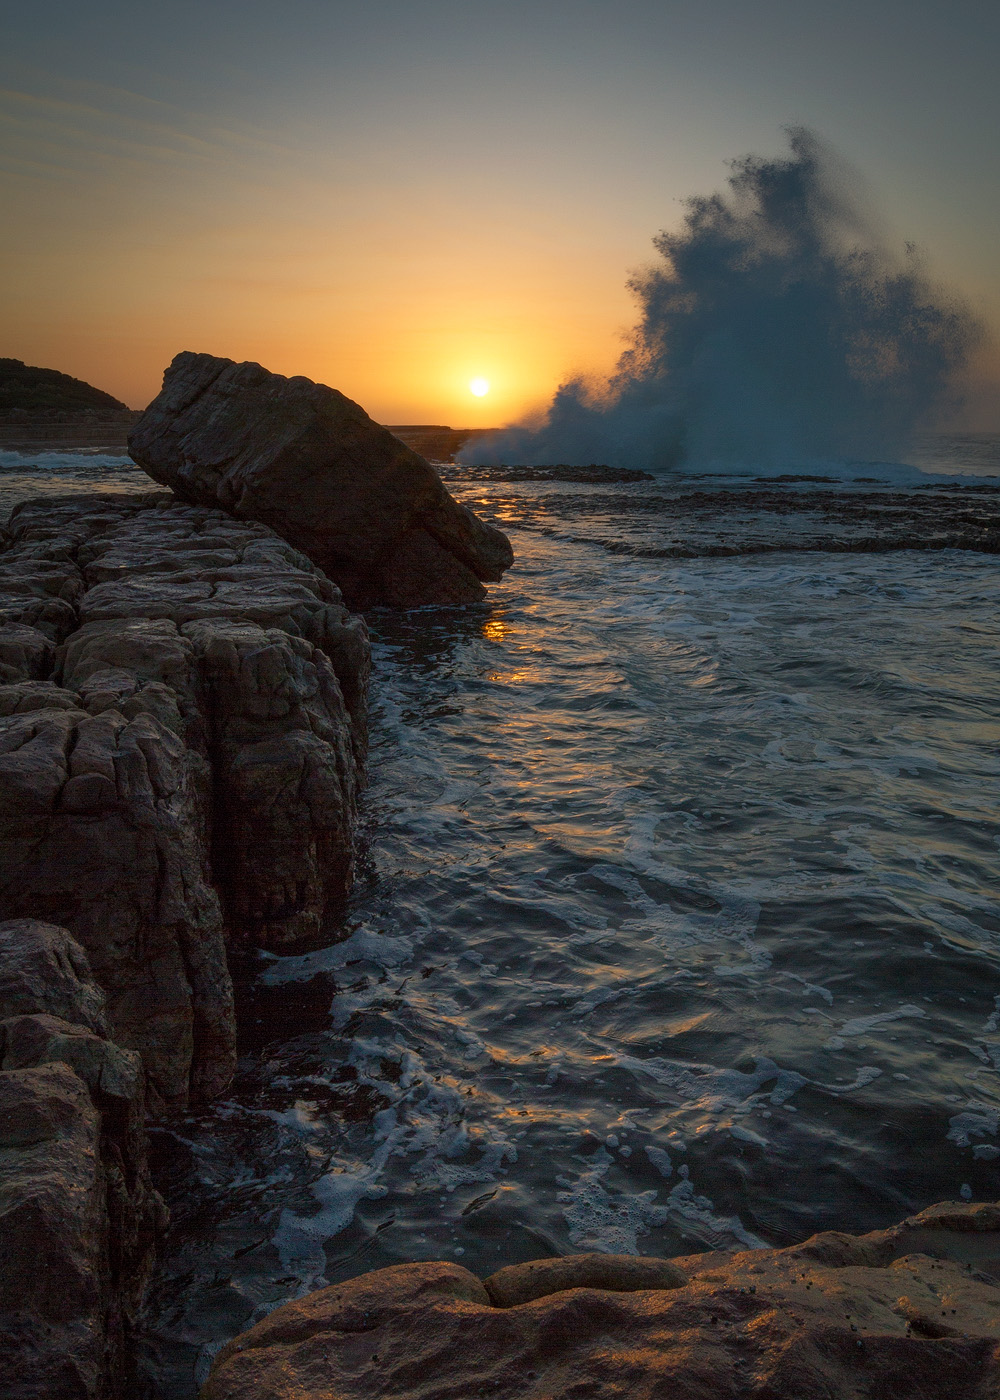 Luputhana – the quintessential view with crashing waves and sculpted rocks.